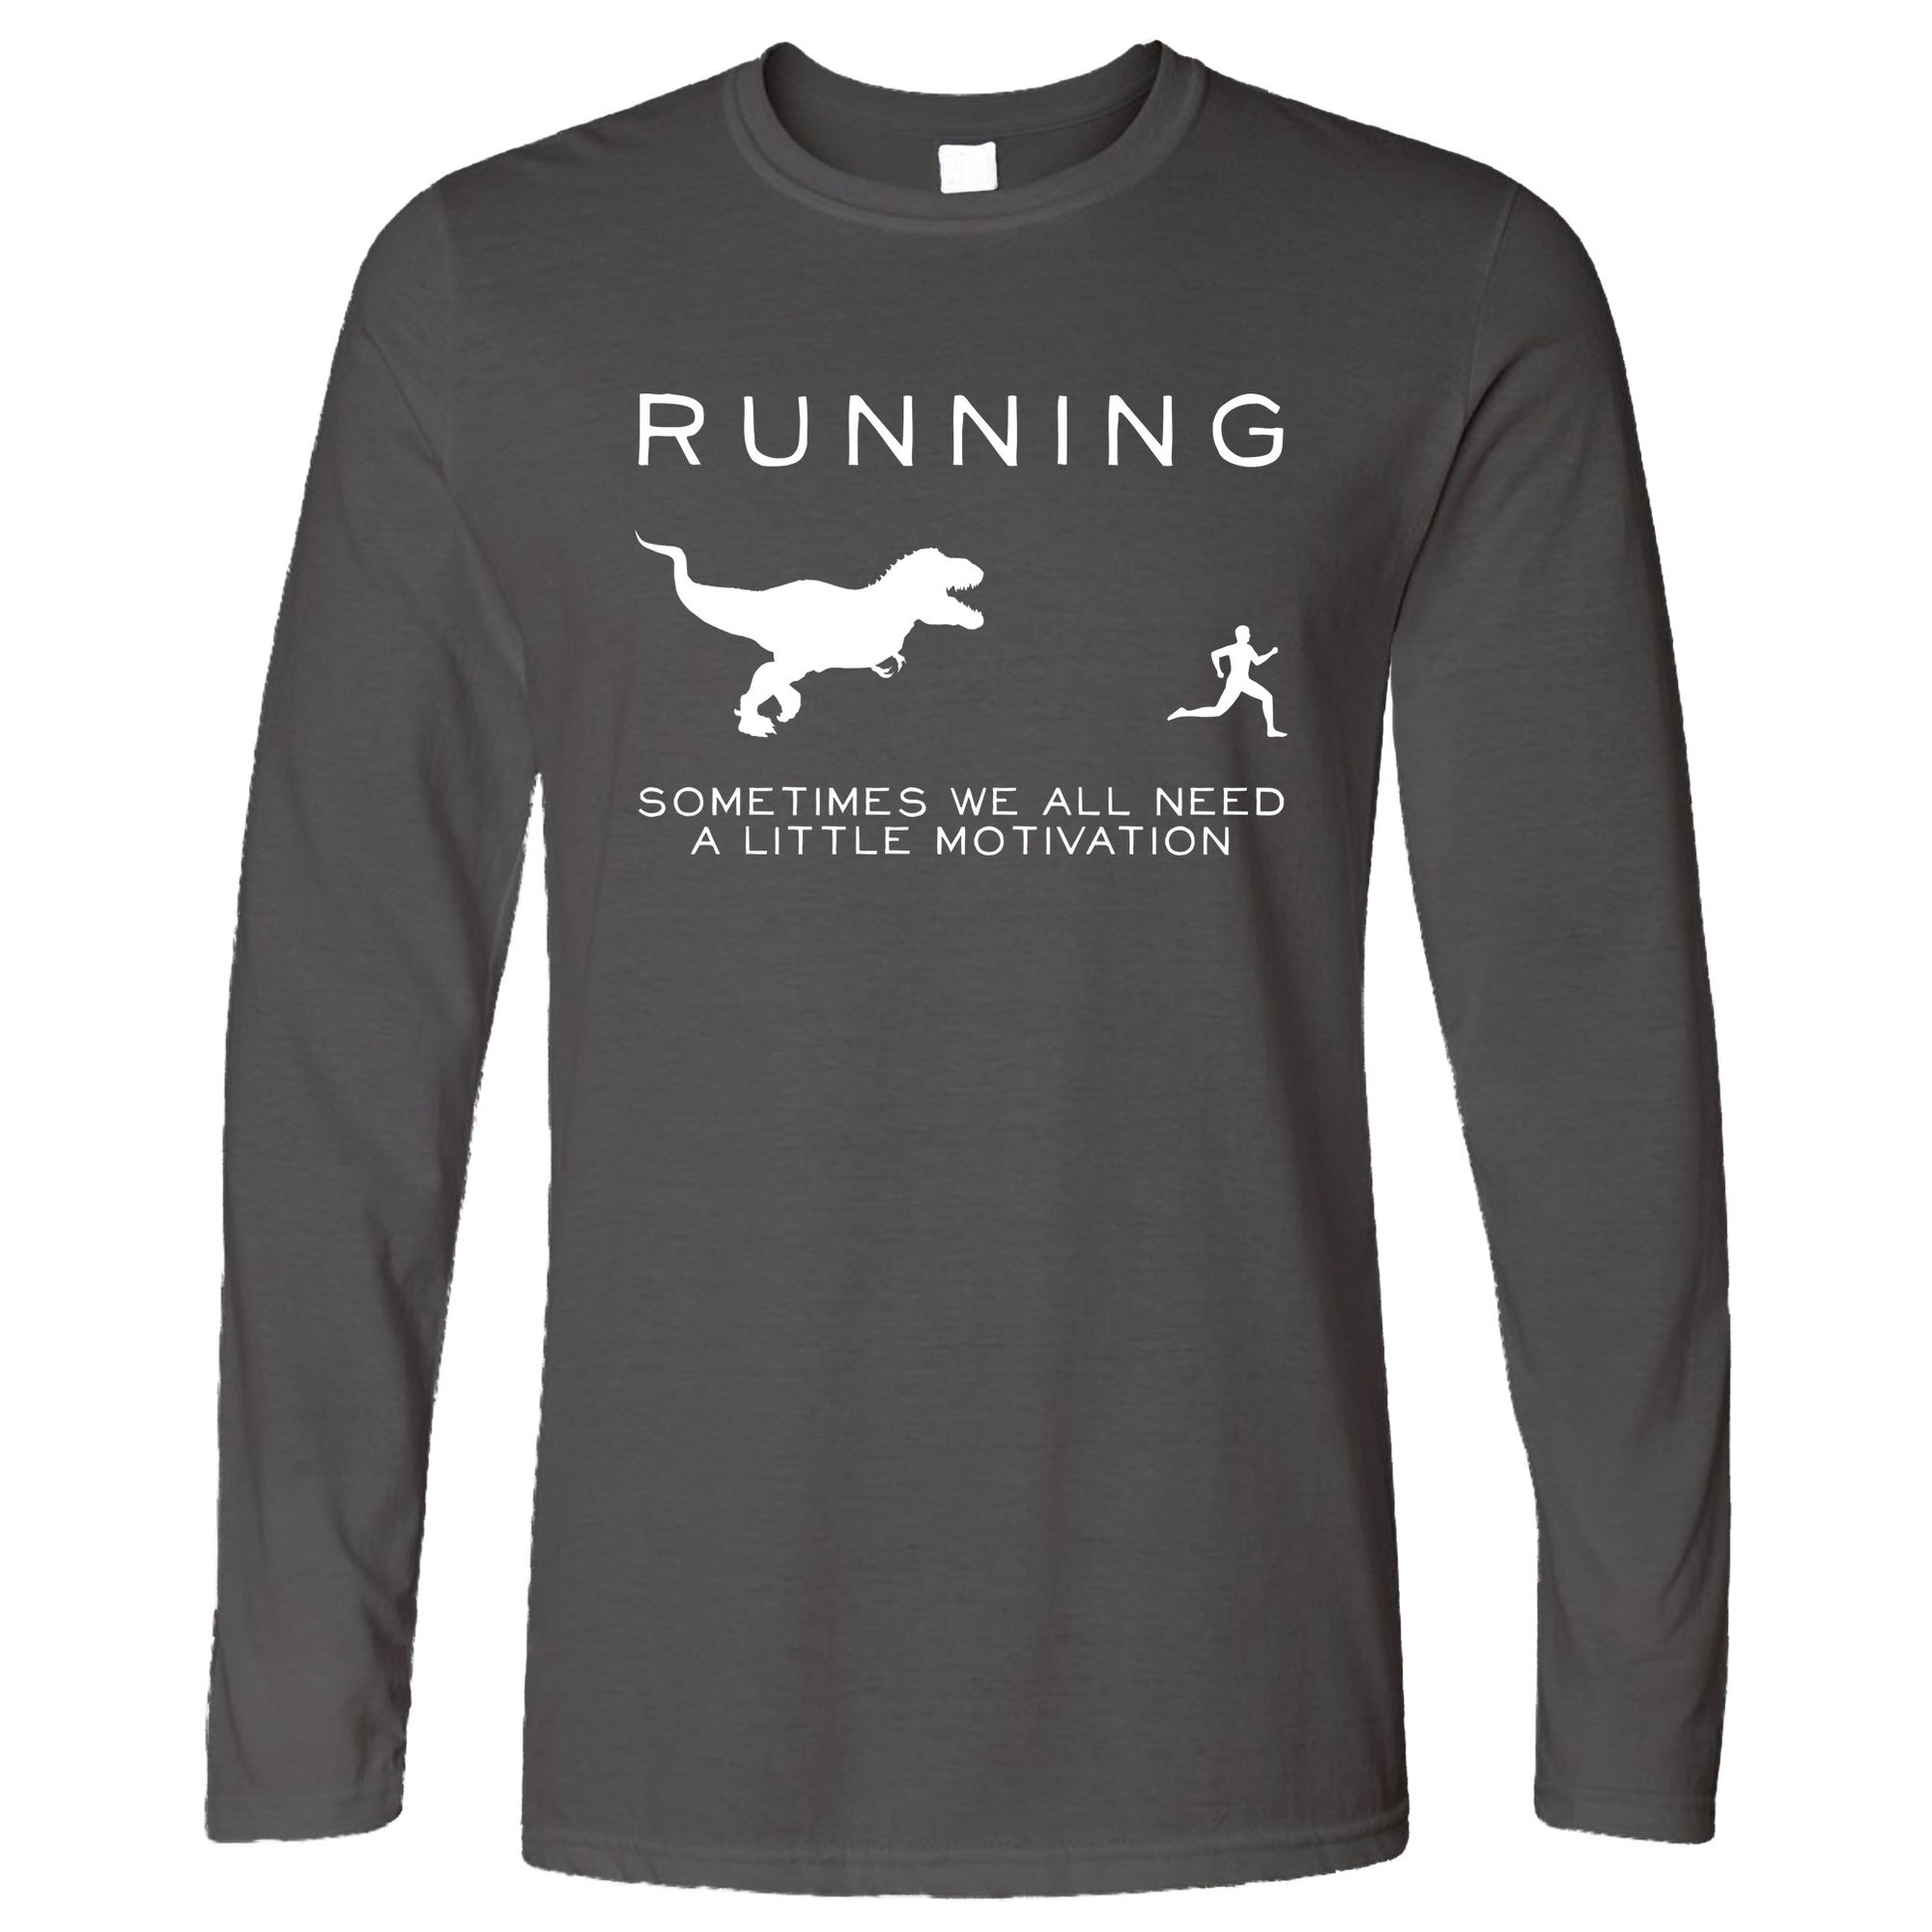 Running Long Sleeve Just Need Motivation T-Rex